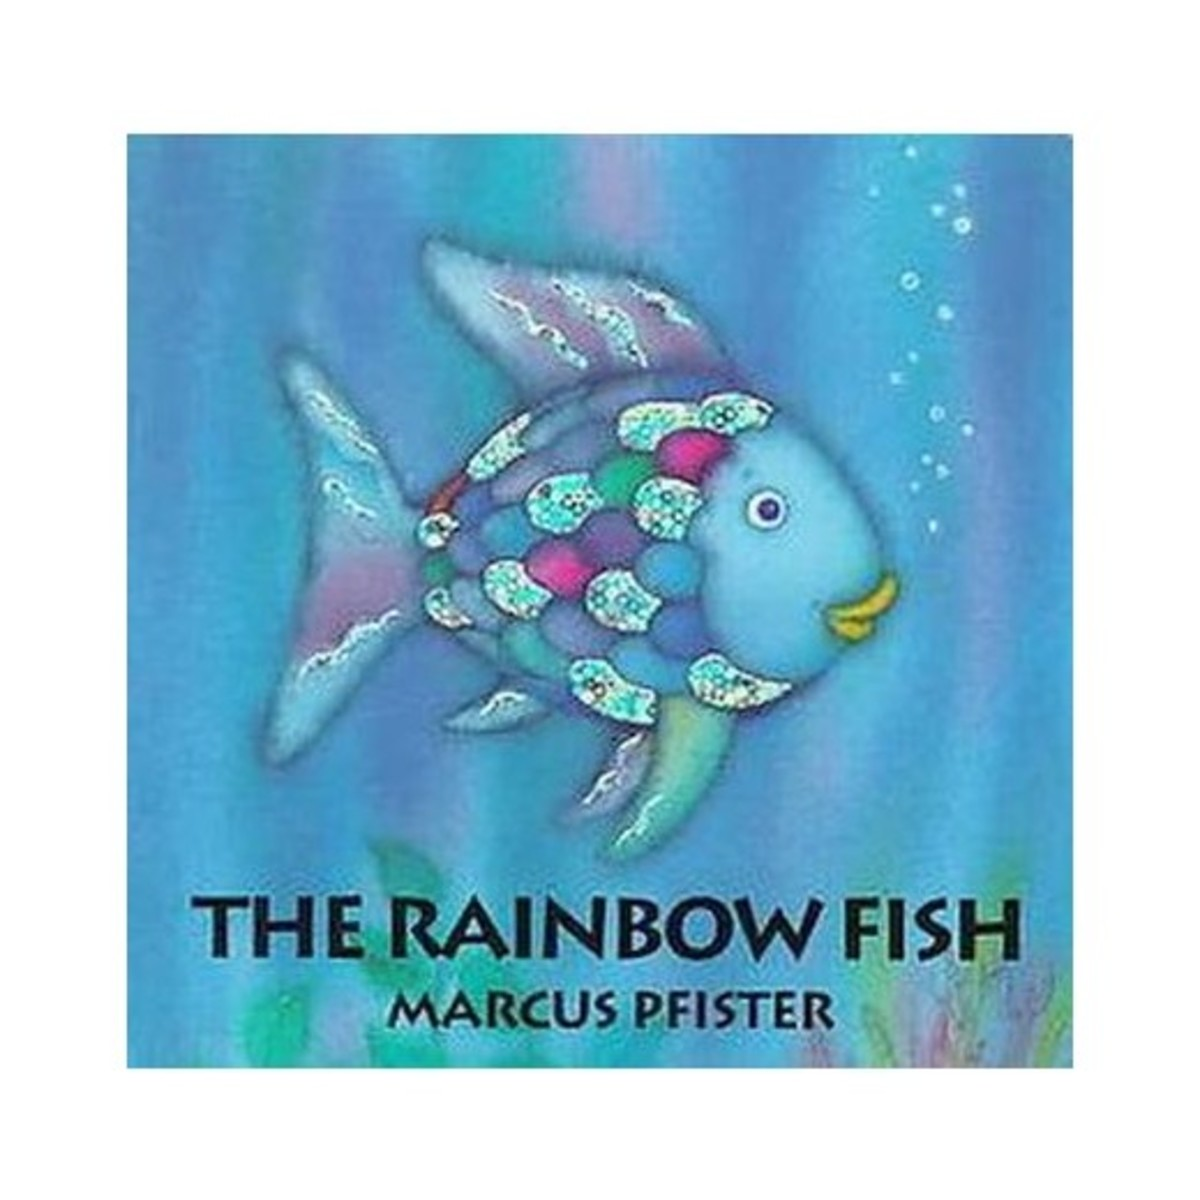 On the 25th anniversary of The Rainbow Fish, the official website asked readers to post pictures where they photoshopped Rainbow Fish into pictures from their world. Check out the hashtag on Instagram or Twitter!